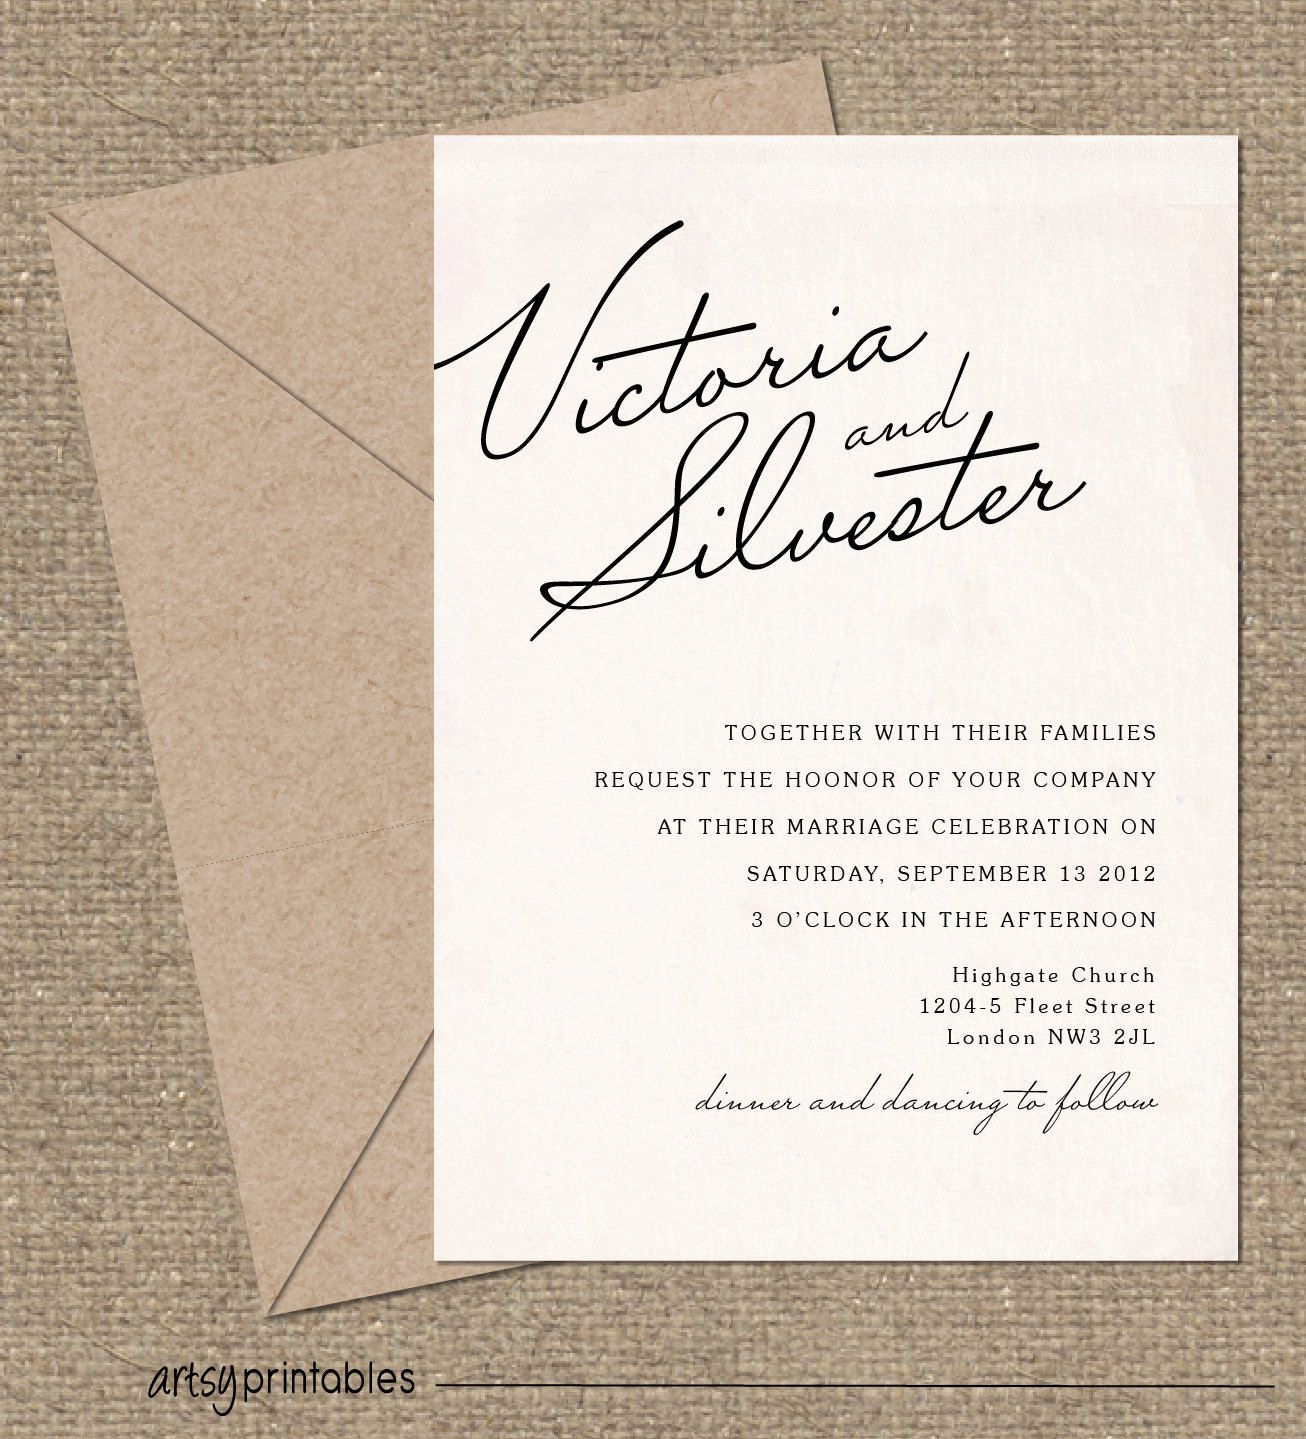 Wedding Invitation Wording Together With Their Parents: VINTAGE Wedding Invitations